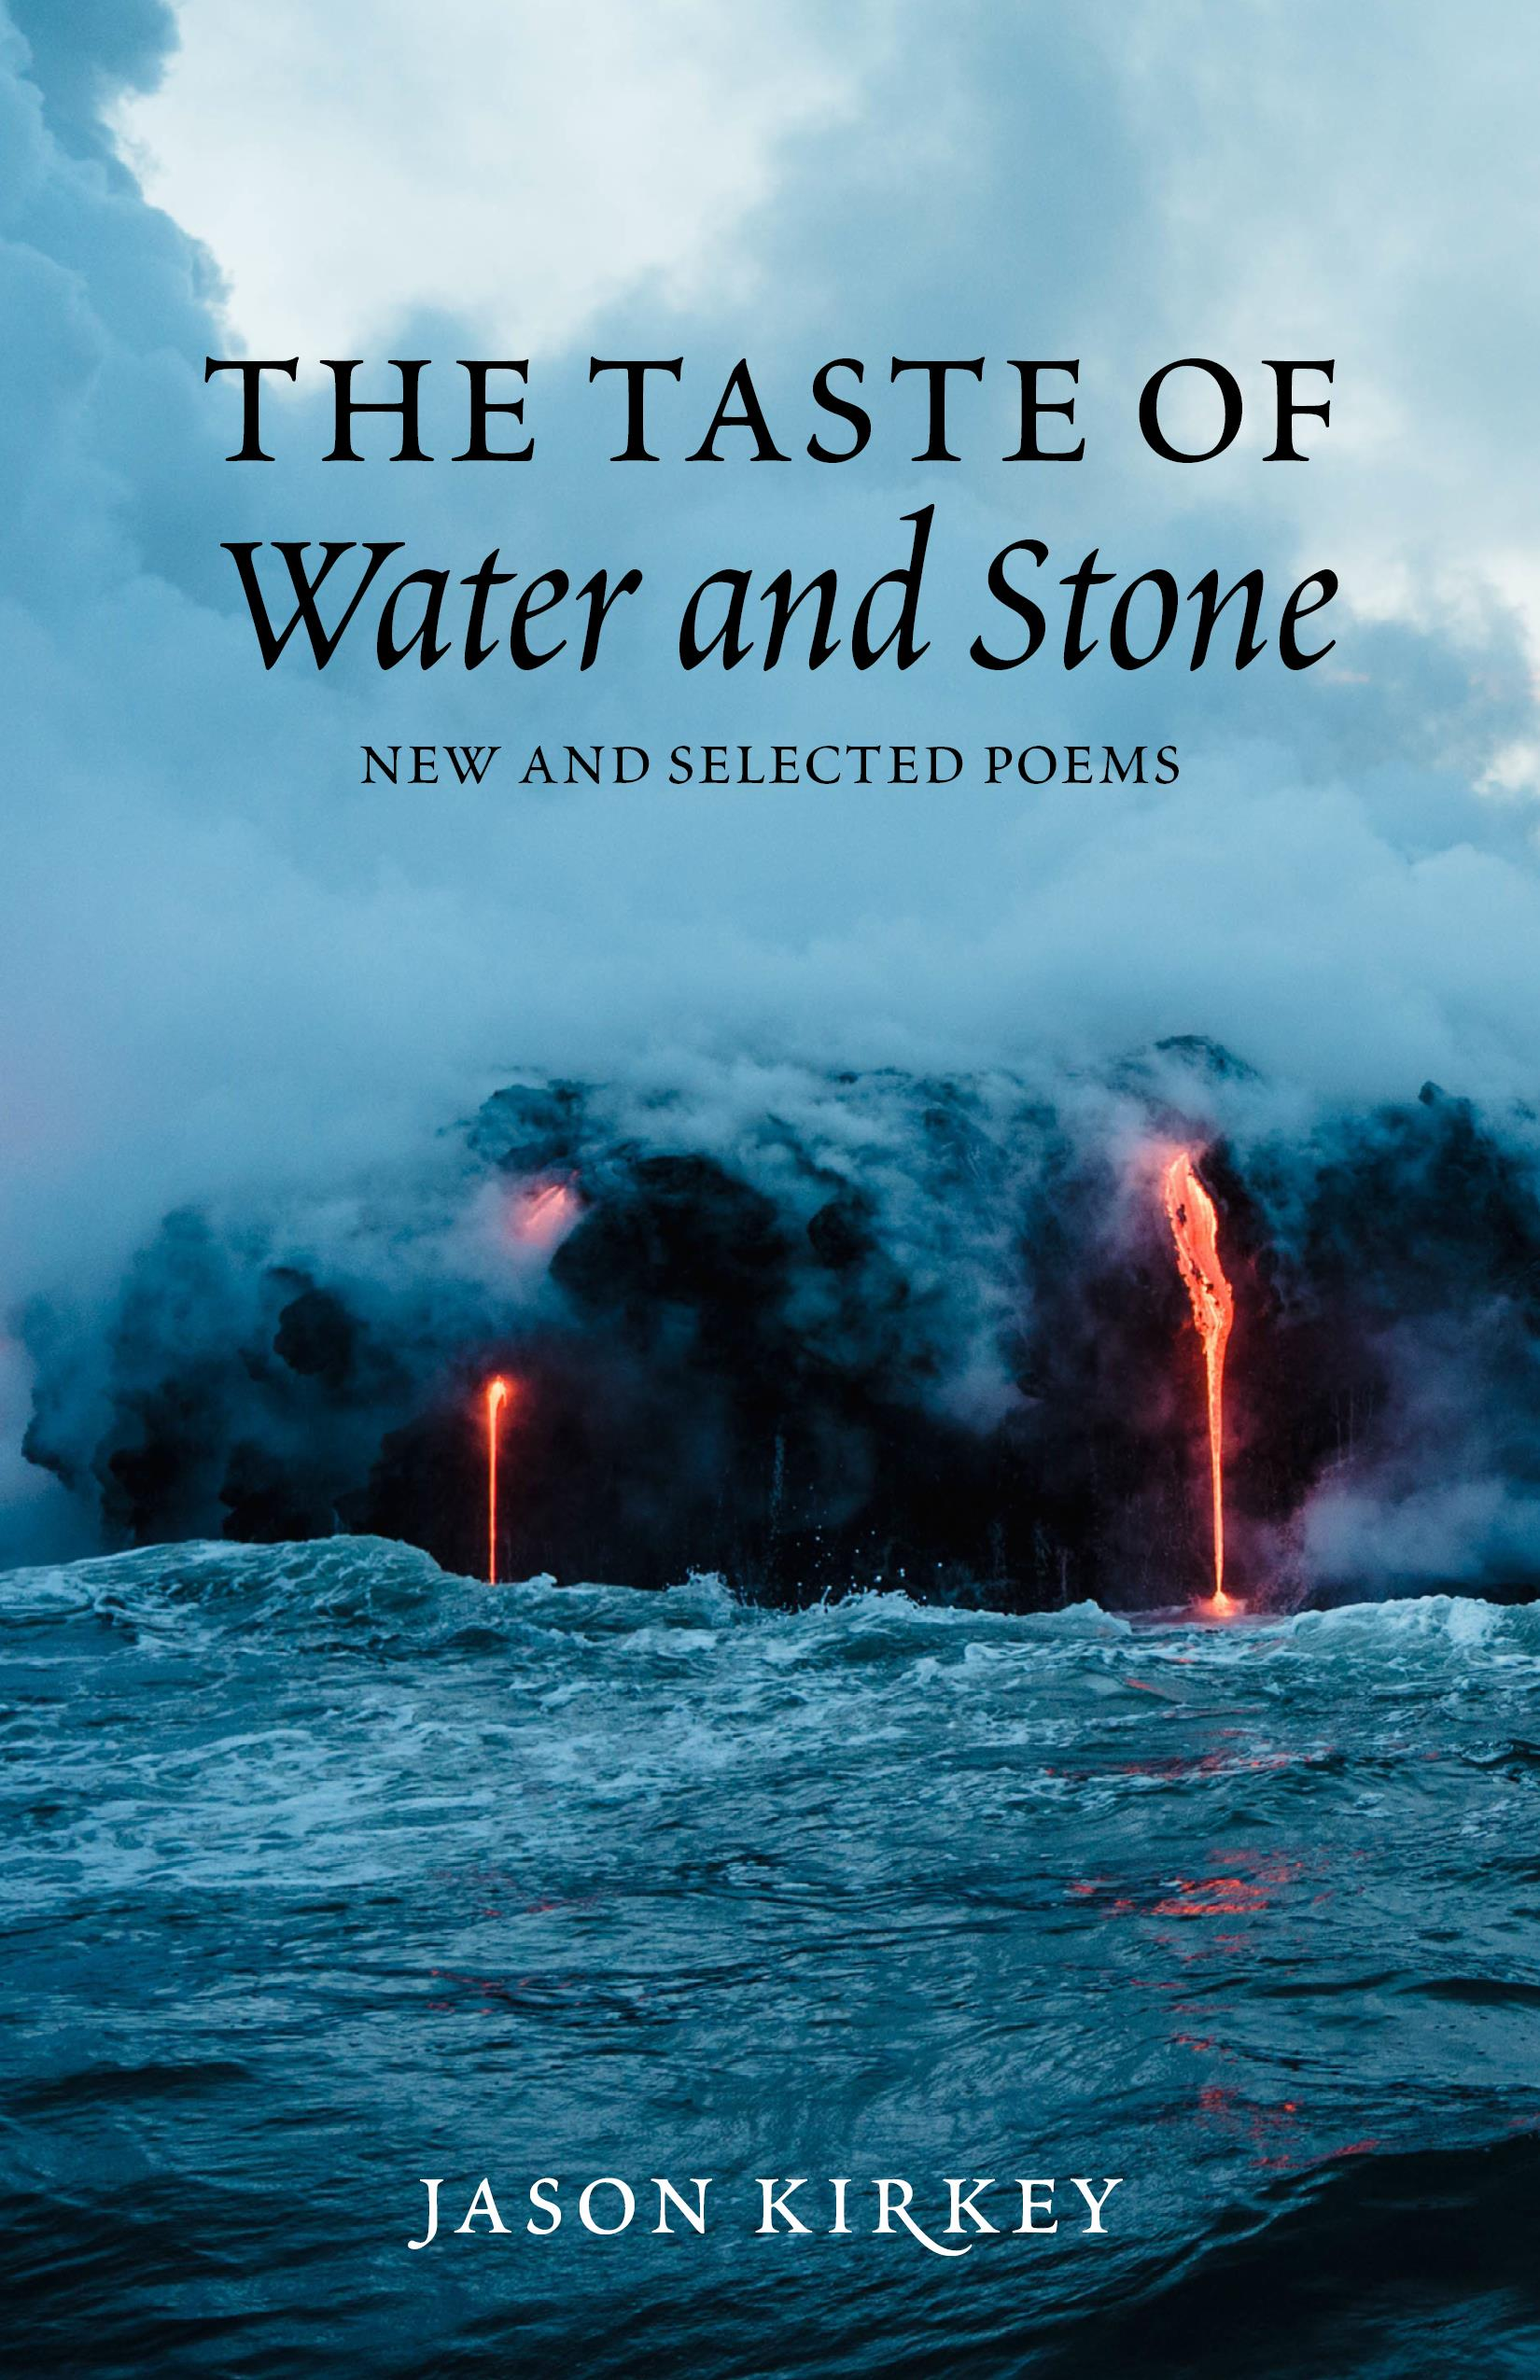 The Taste of Water and Stone: New and Selected Poems